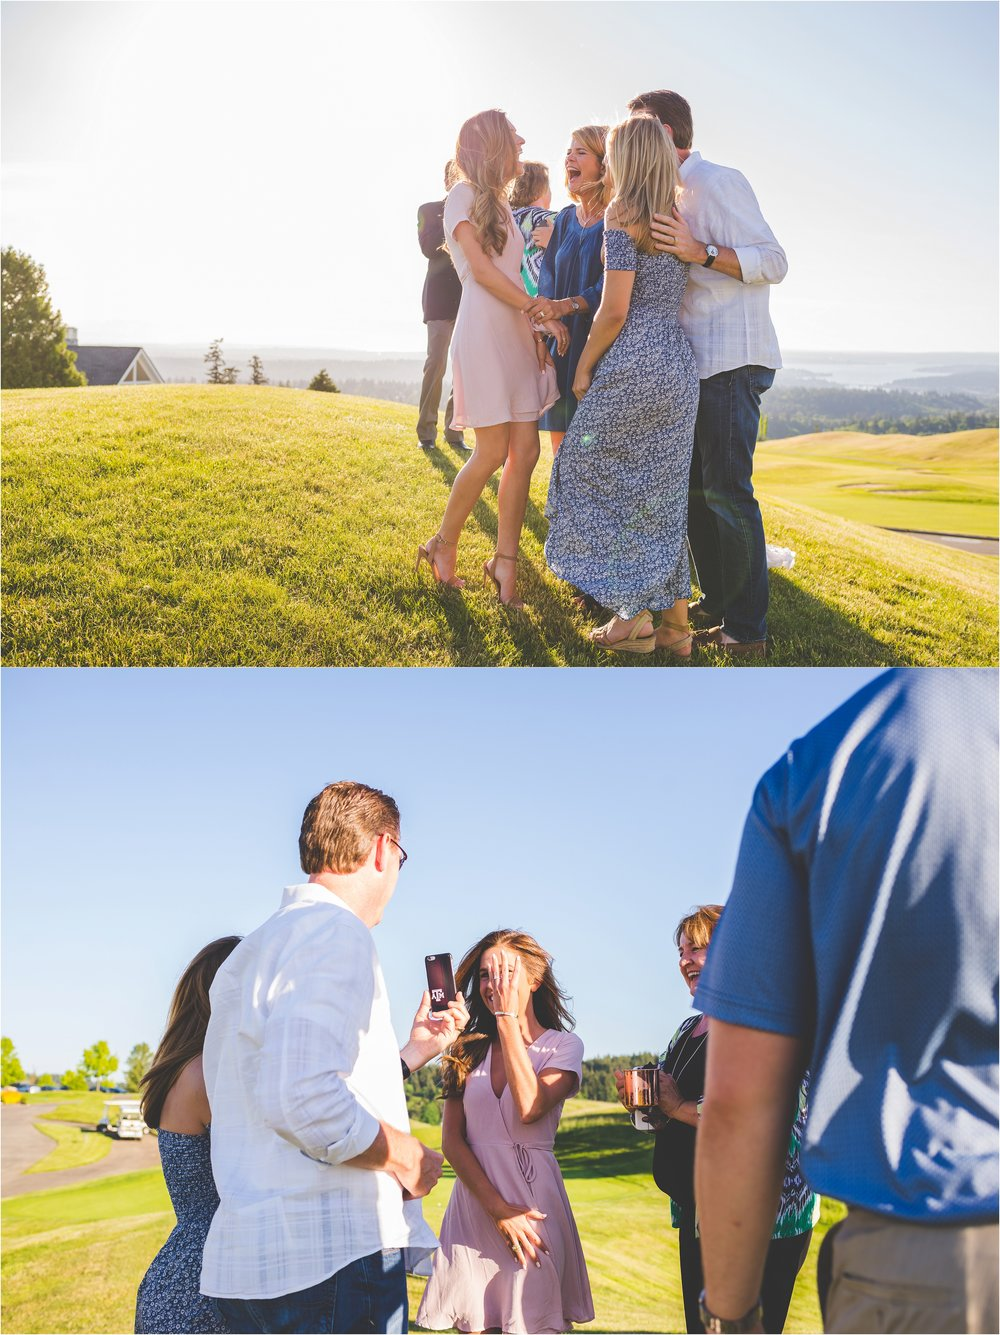 newcastle-golf-club-proposal-jannicka-mayte-seattle-washington-engagement-wedding-photographer_0014.jpg